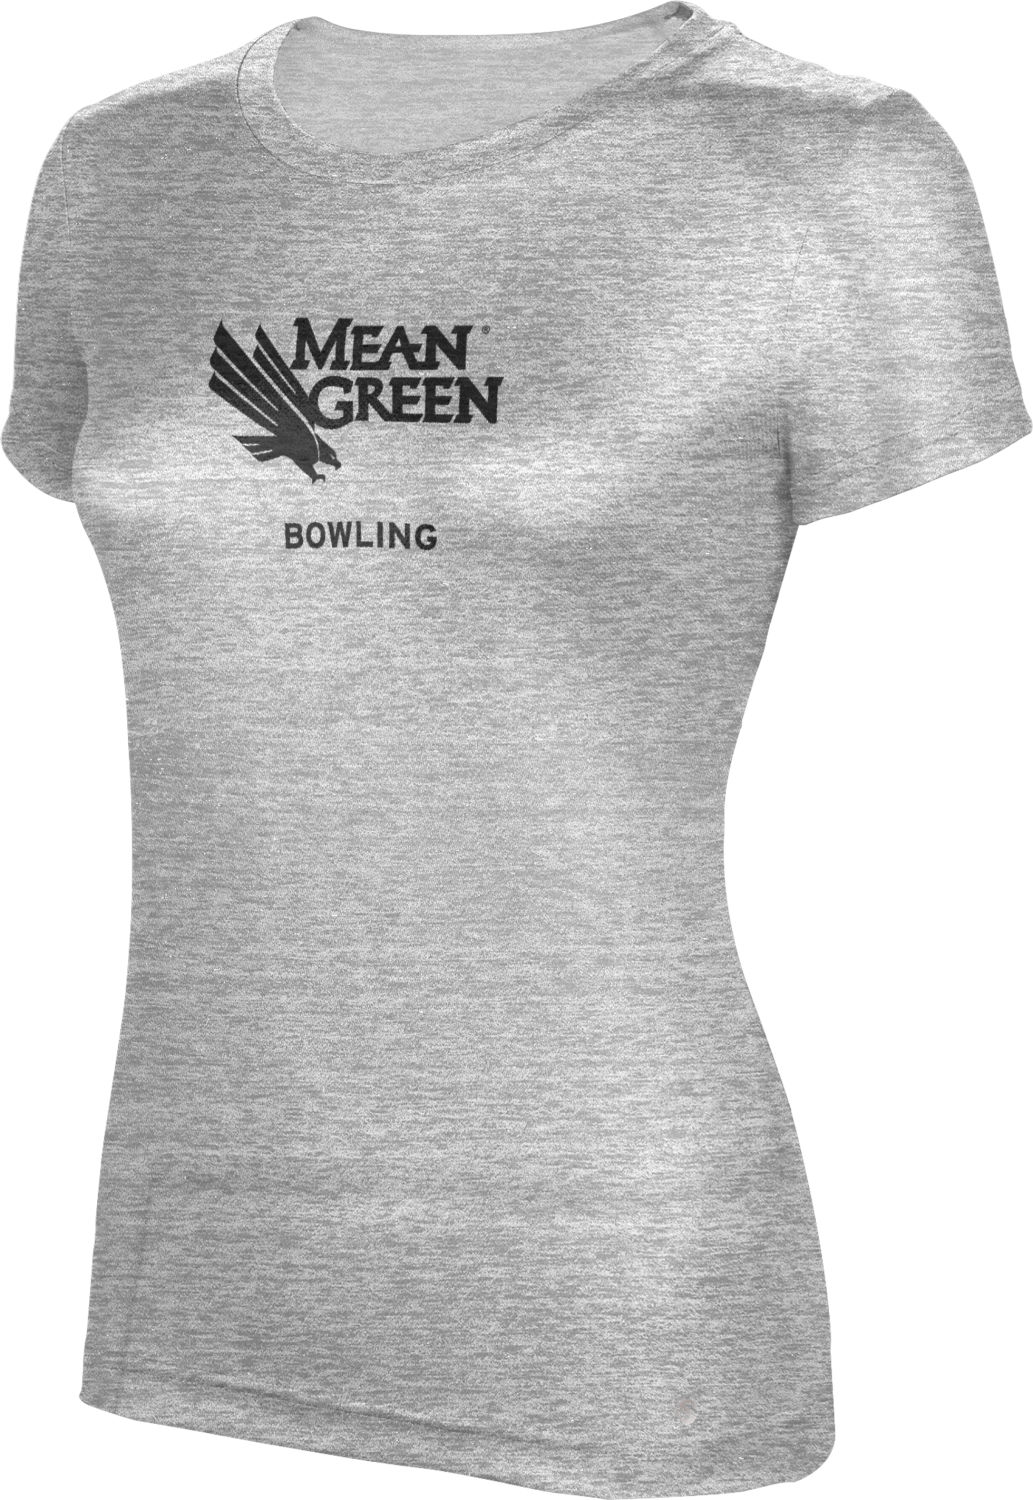 Women's ProSphere Tri-Blend Tee - Bowling